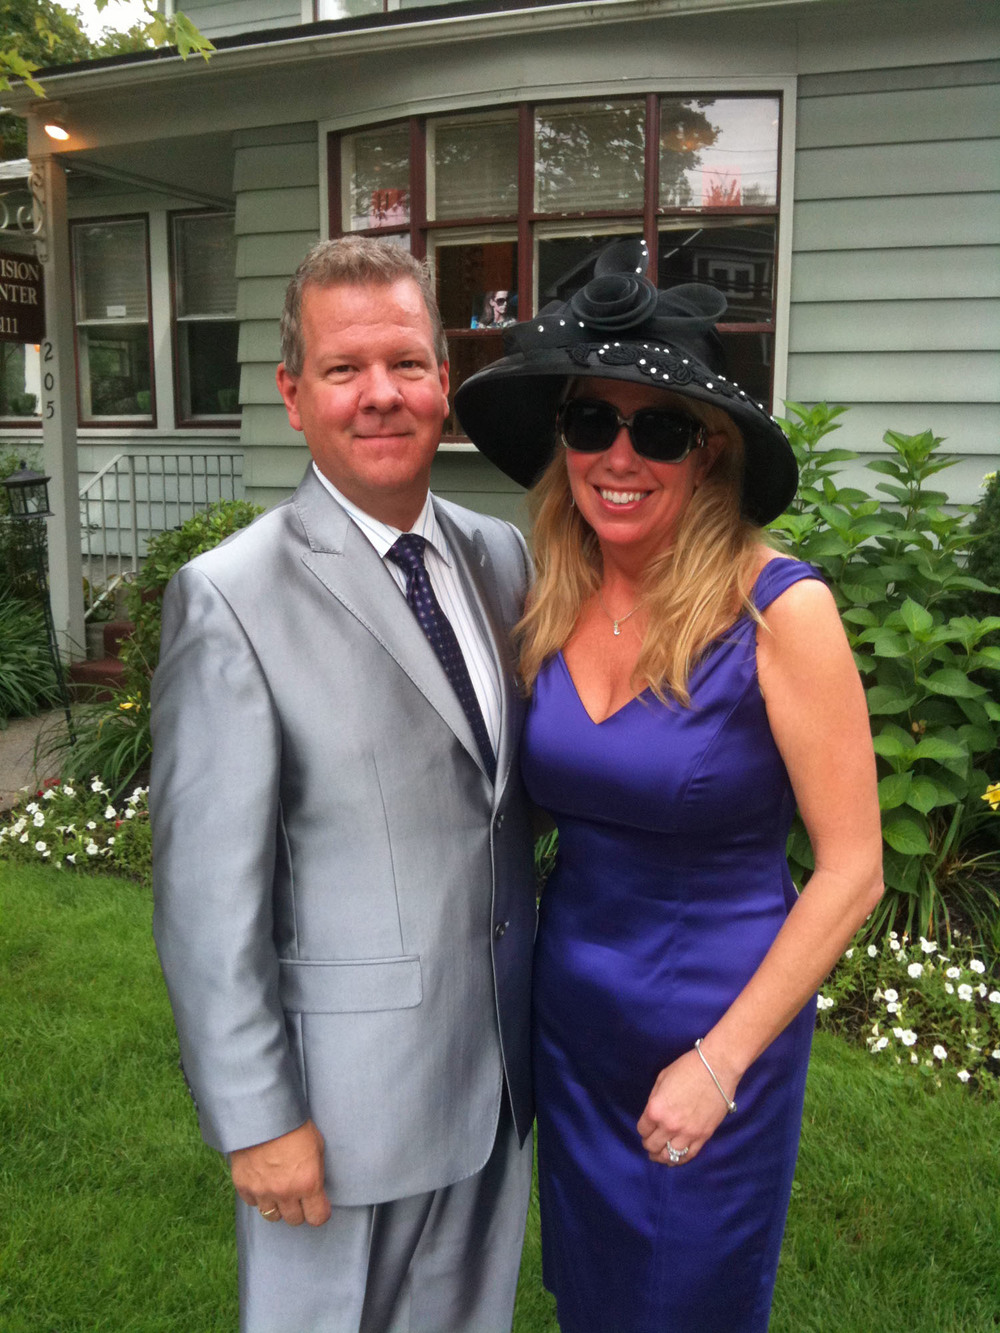 On our way to Saratoga Springs Race Track!